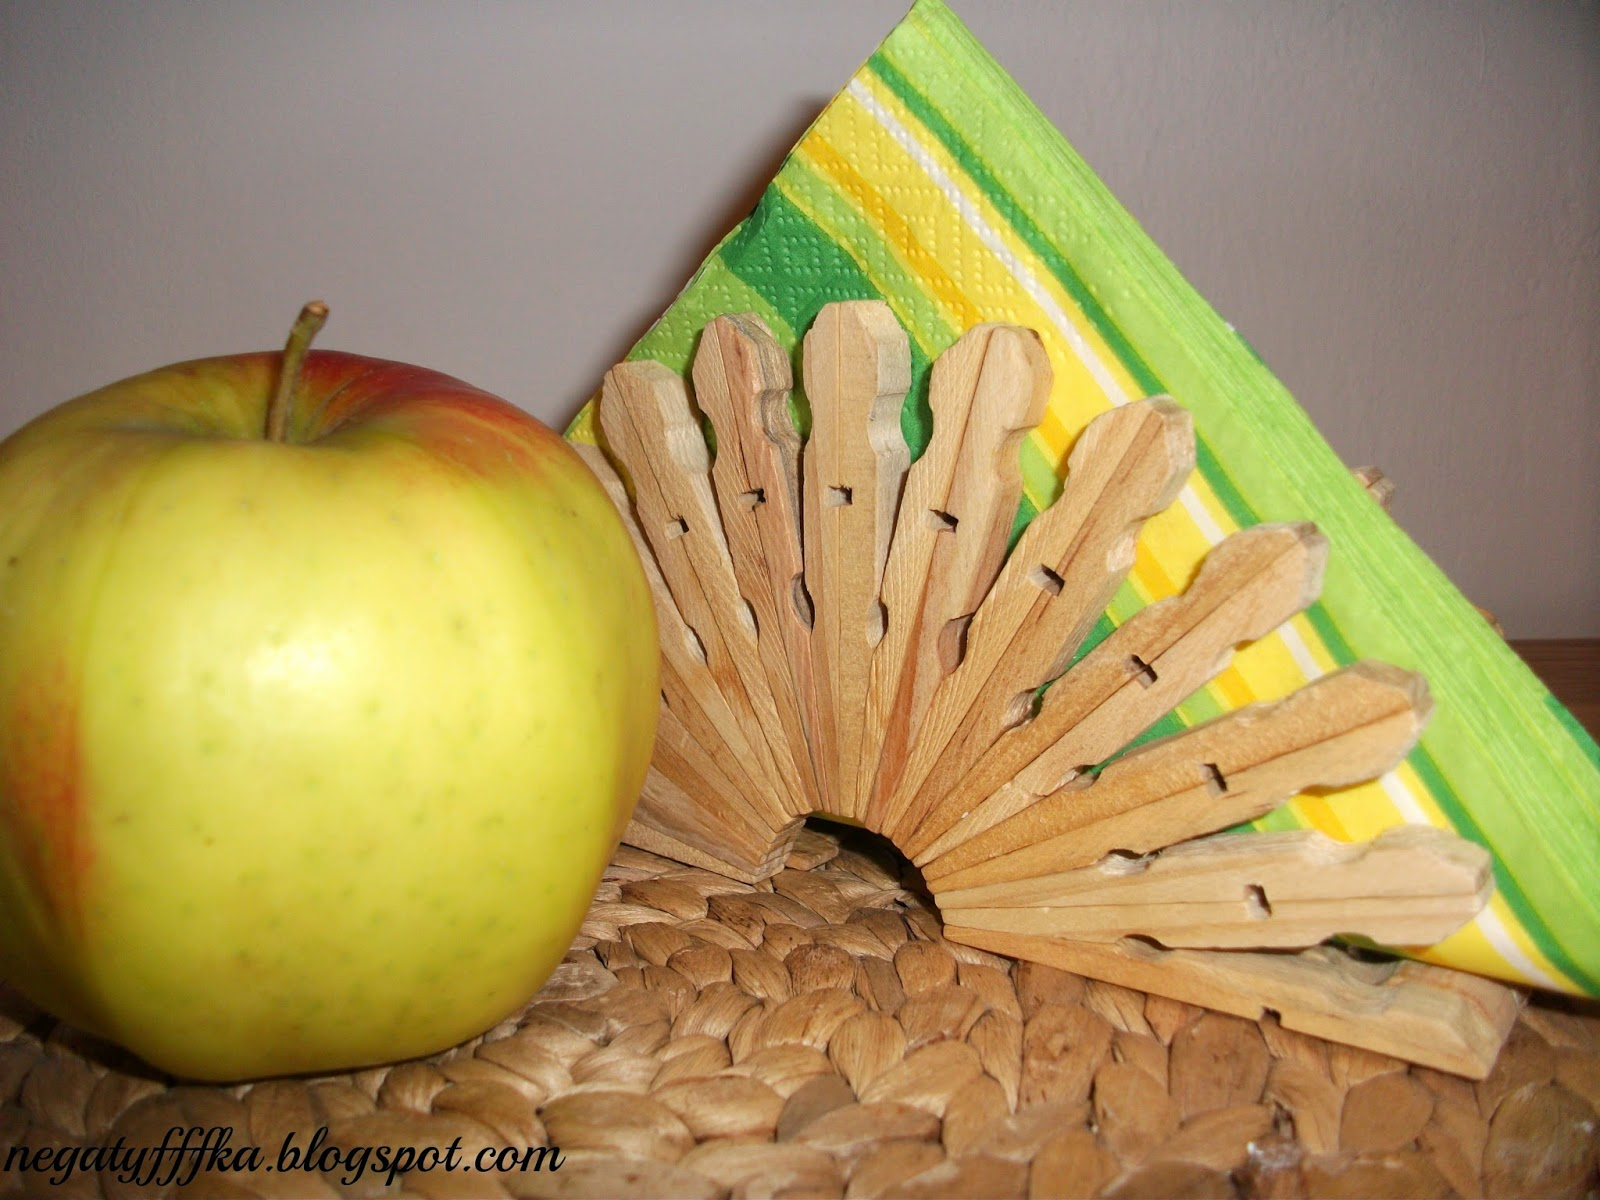 How To Make A Unique Napkin Holder From Clothespins